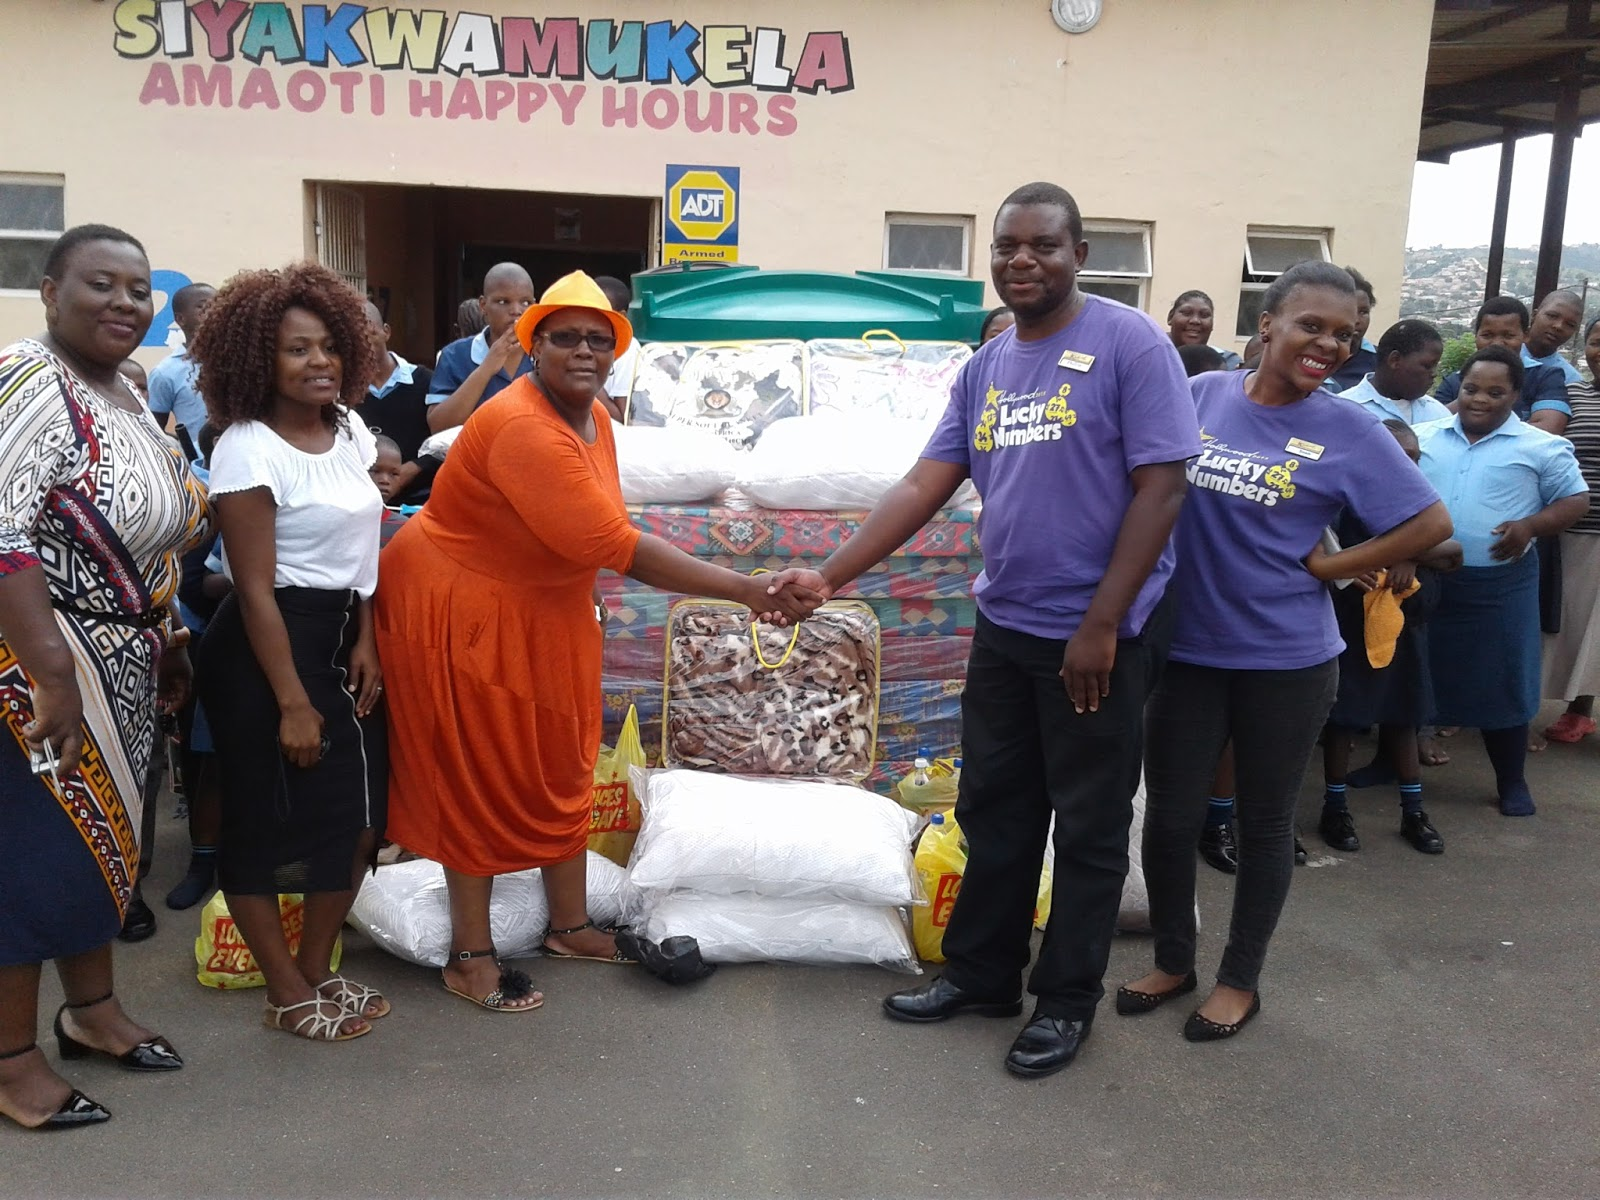 Staff at the Amaoti Happy Hours Day Care Centre are happy to receive support from Hollywoodbets Verulam